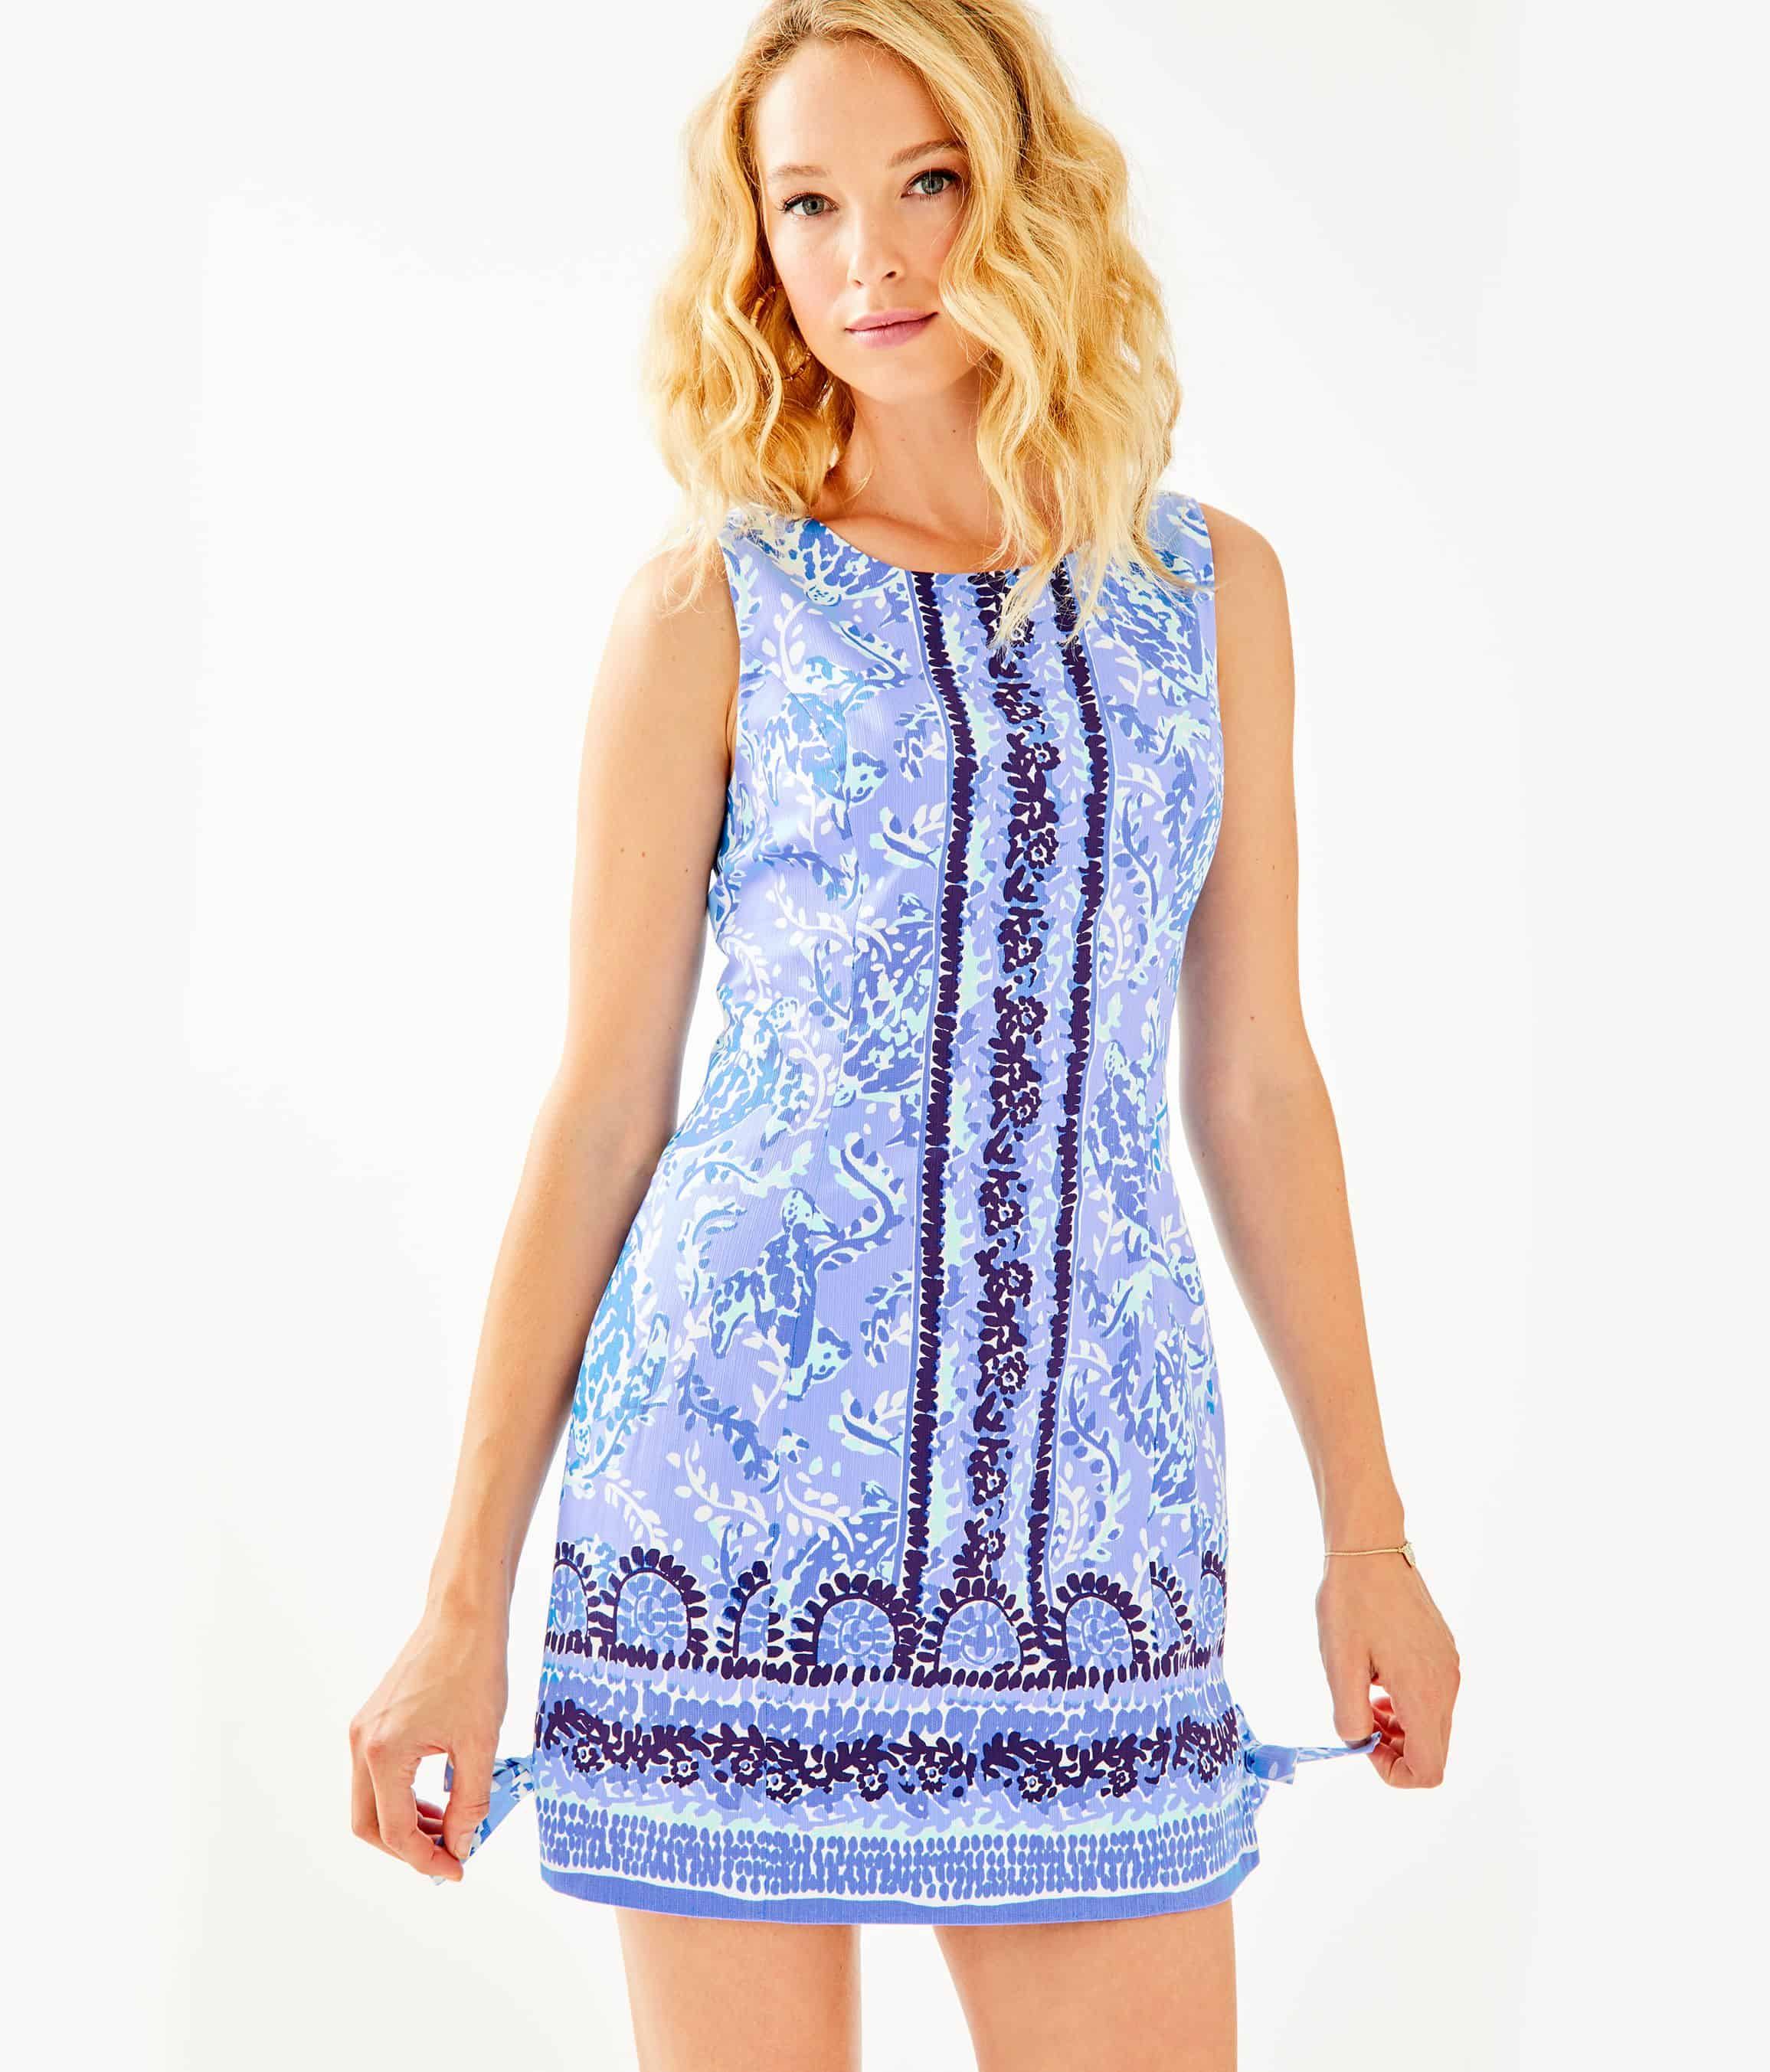 Lilly Pulitzer After Party Sale favorites featured by top US fashion blog, Glamorous Versatility: image of Lilly Pulitzer Mila stretch fit dress